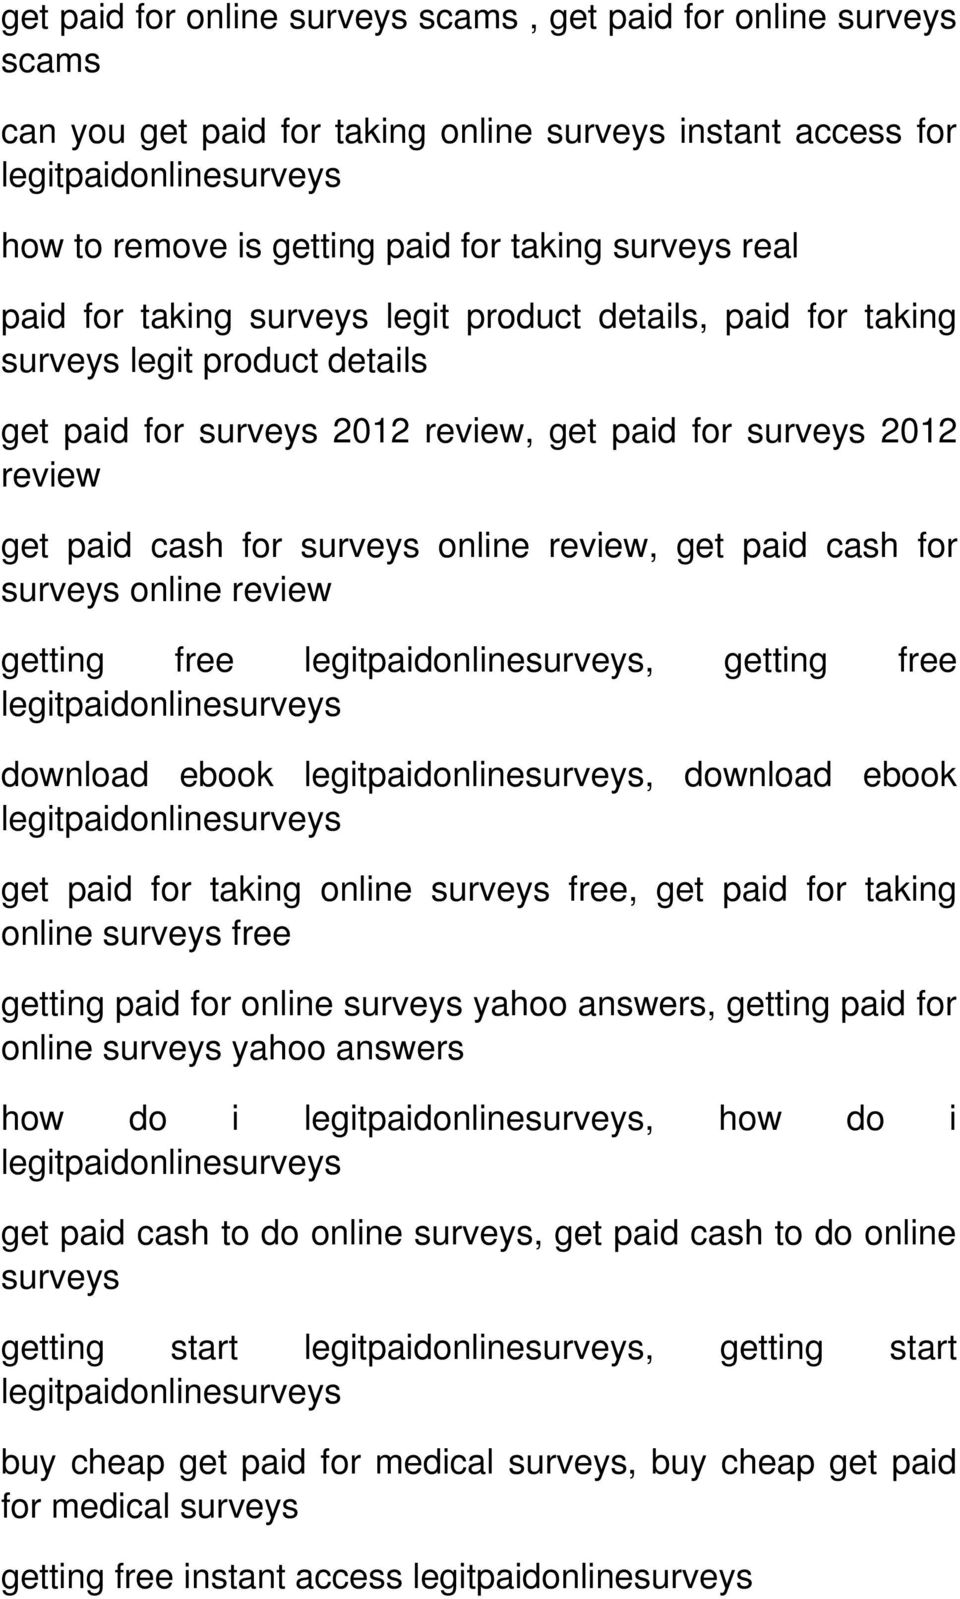 paid cash for surveys online review getting free, getting free download ebook, download ebook get paid for taking online surveys free, get paid for taking online surveys free getting paid for online